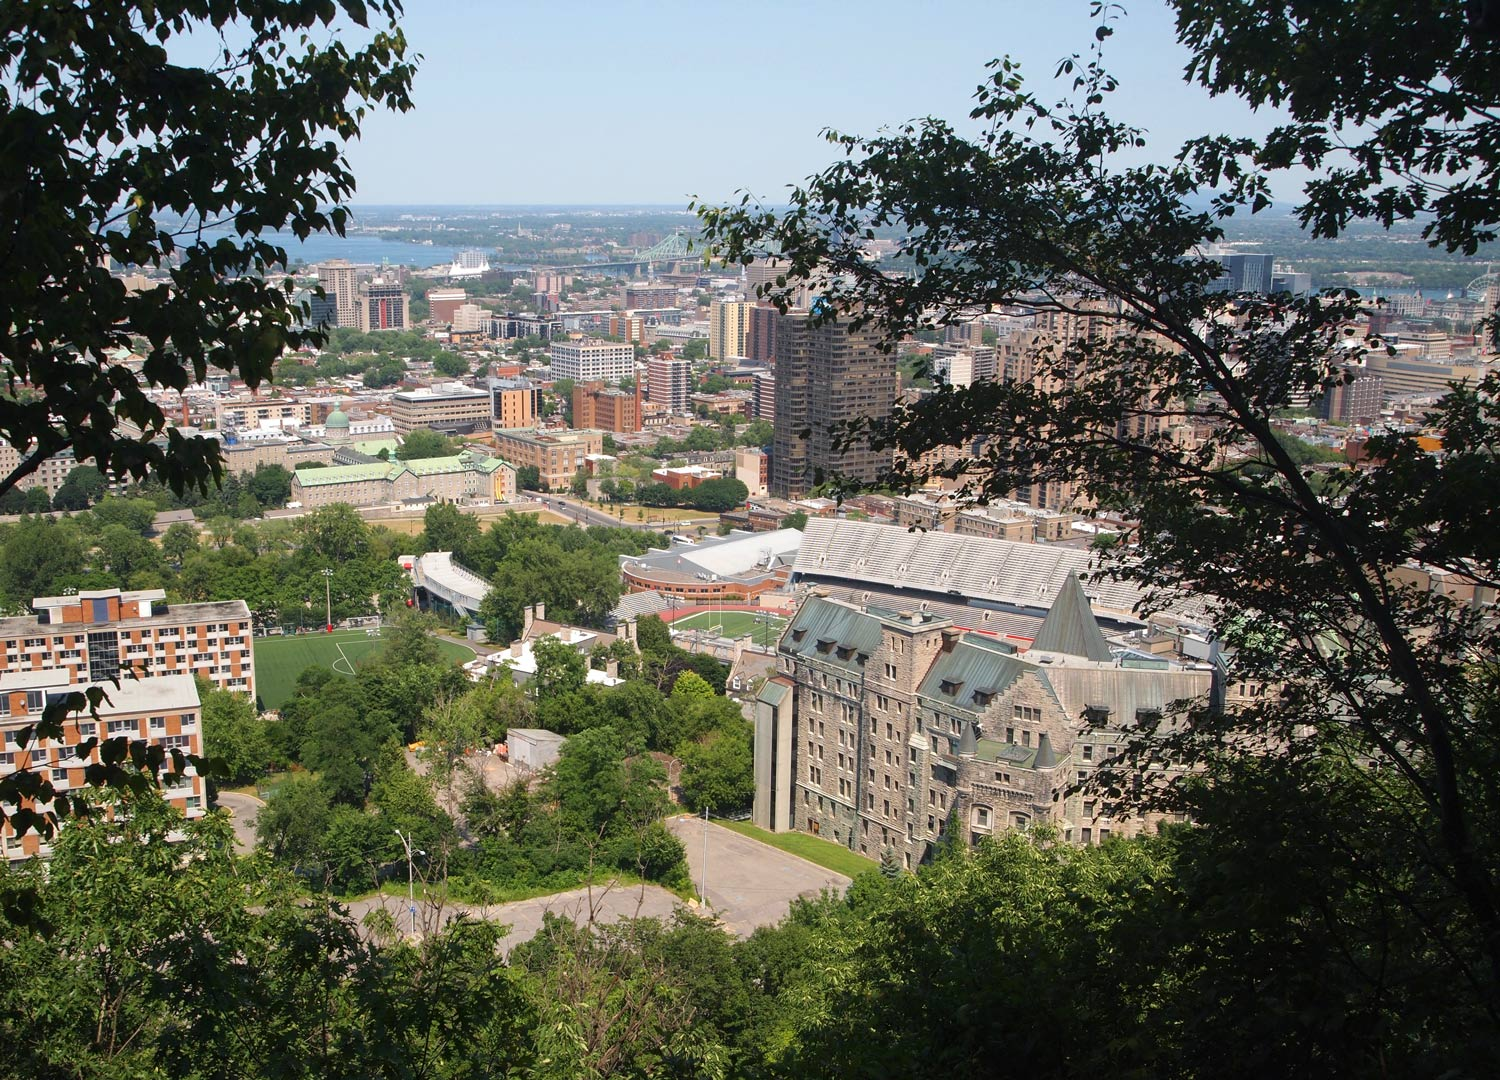 Montreal-Royal-Victoria-Hospital-view-above.jpg